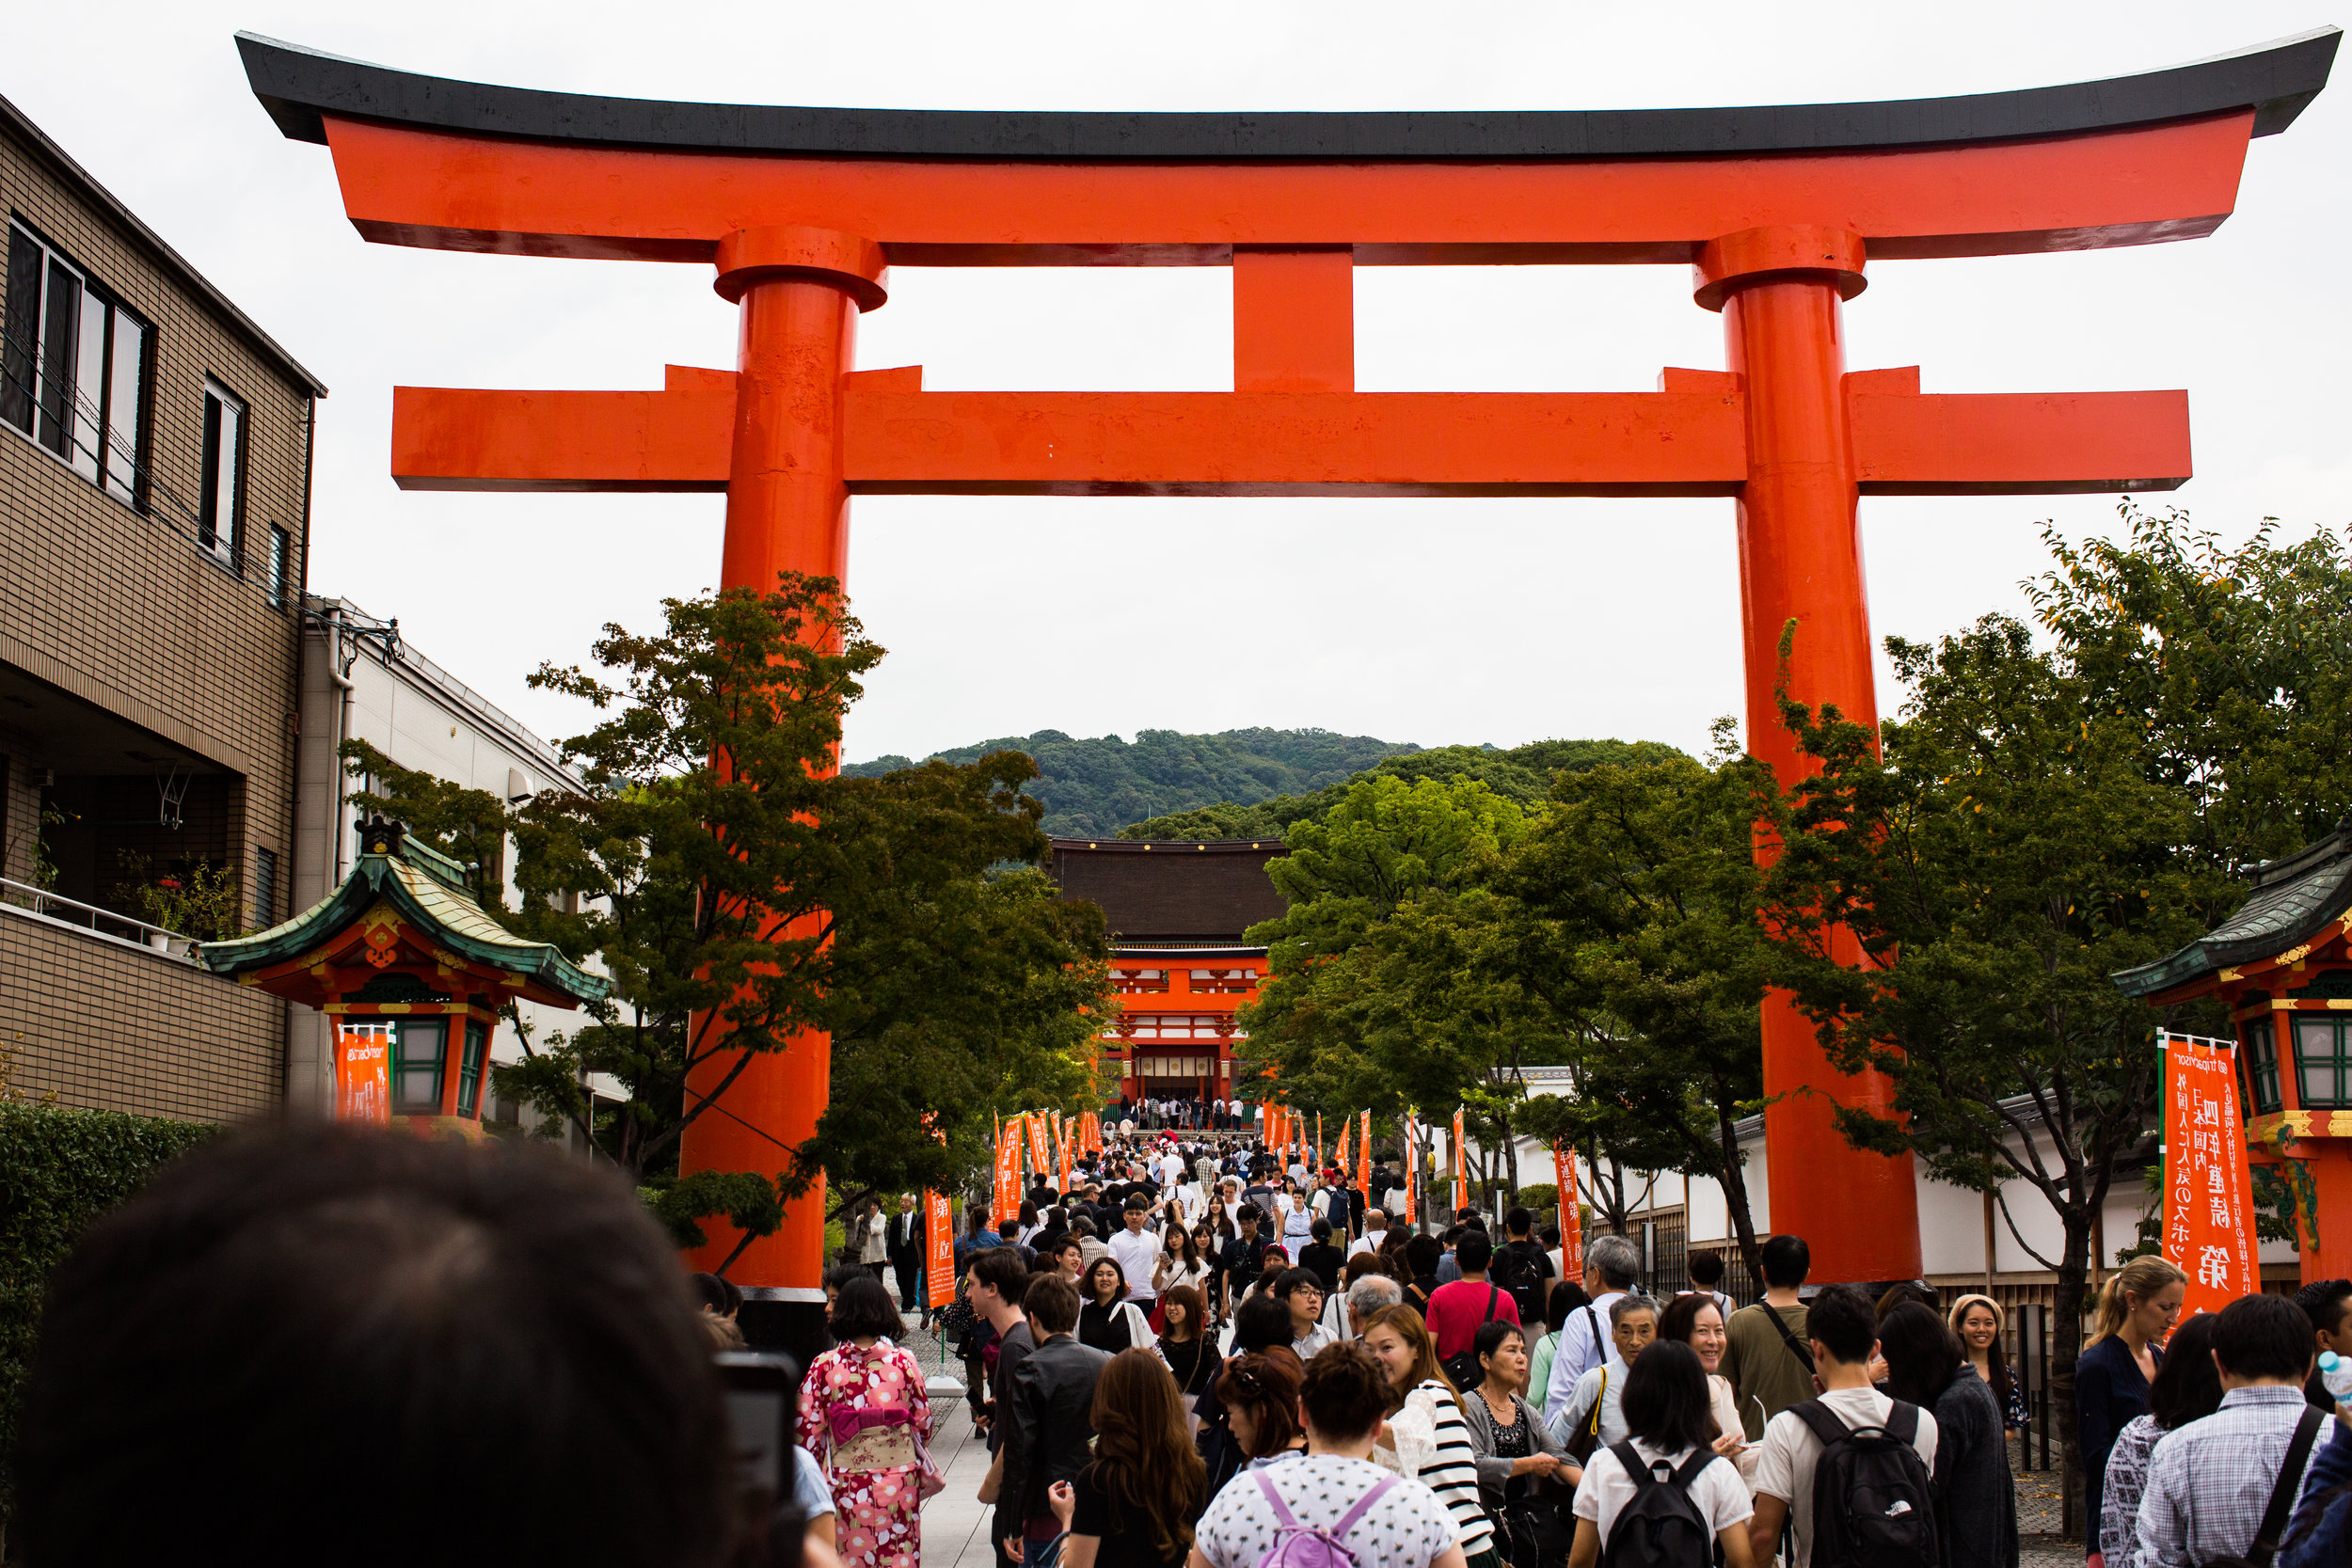 While the Fushimi Inari Shrine is a must see, you'd best get there around 7am if you intend on getting that perfect solo shot. We were more dedicated to sleep.